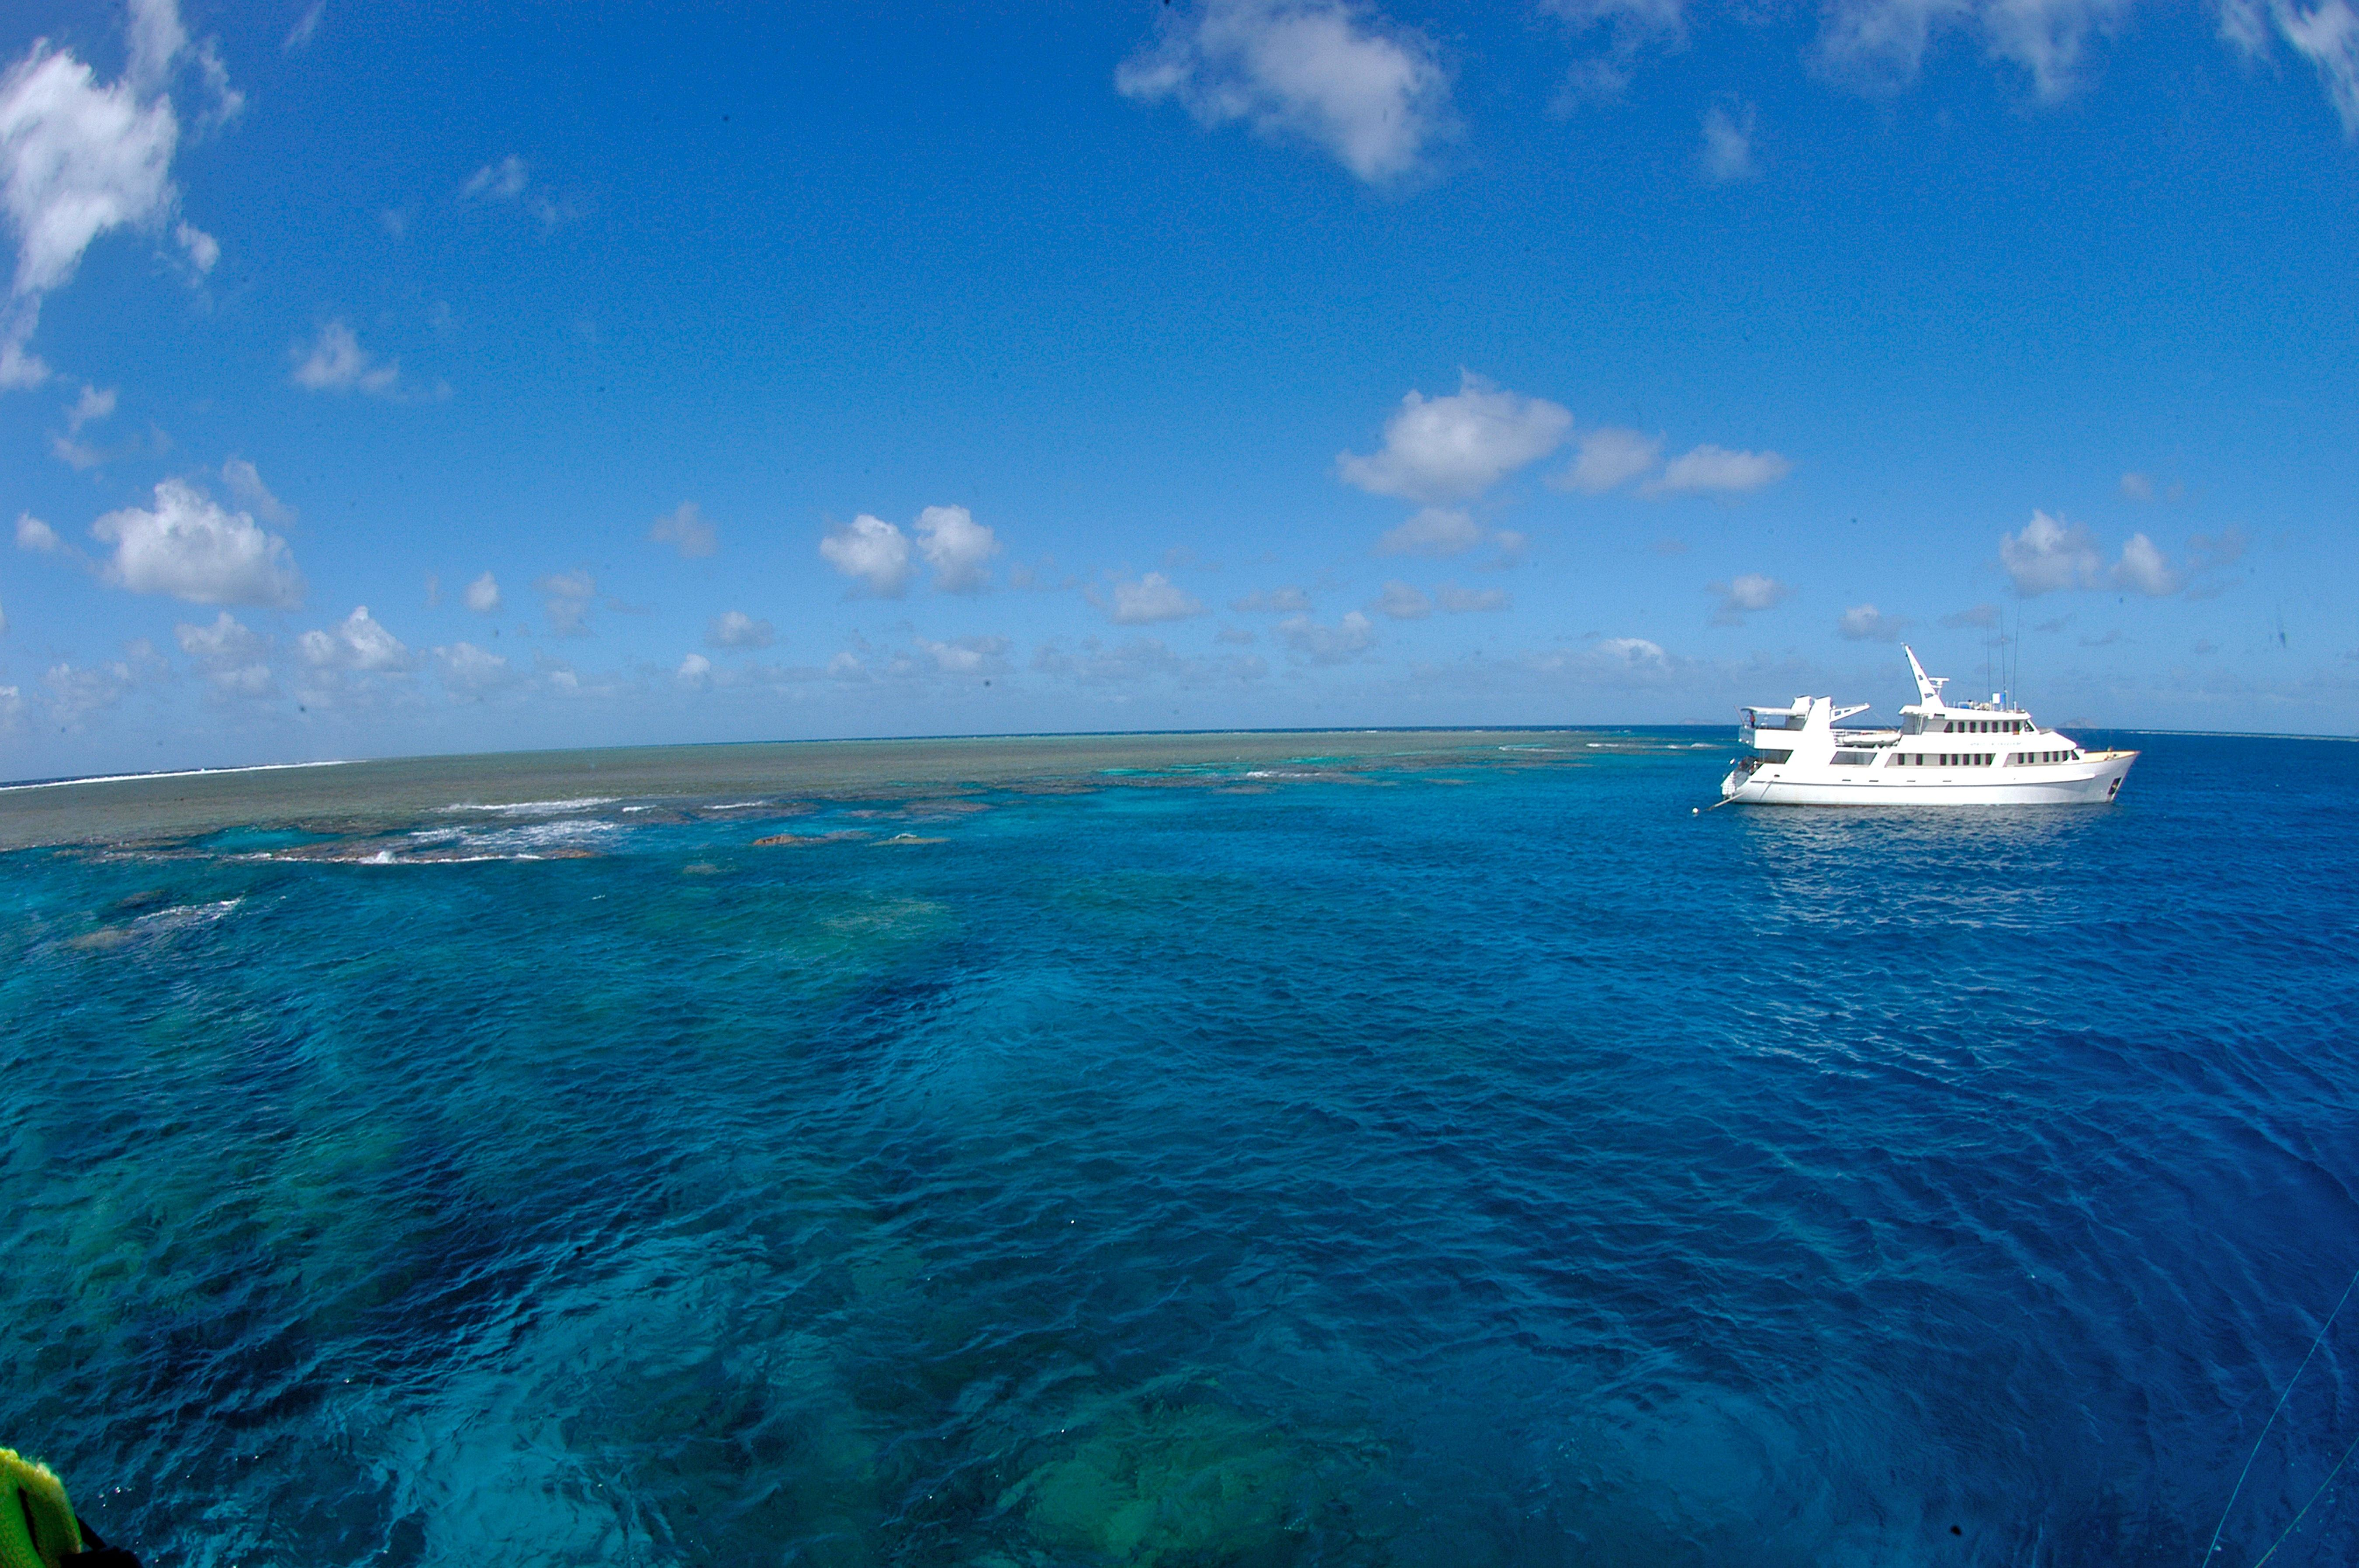 Image: A ship sails on the western Pacific Ocean near the Great Barrier Reef, Australia